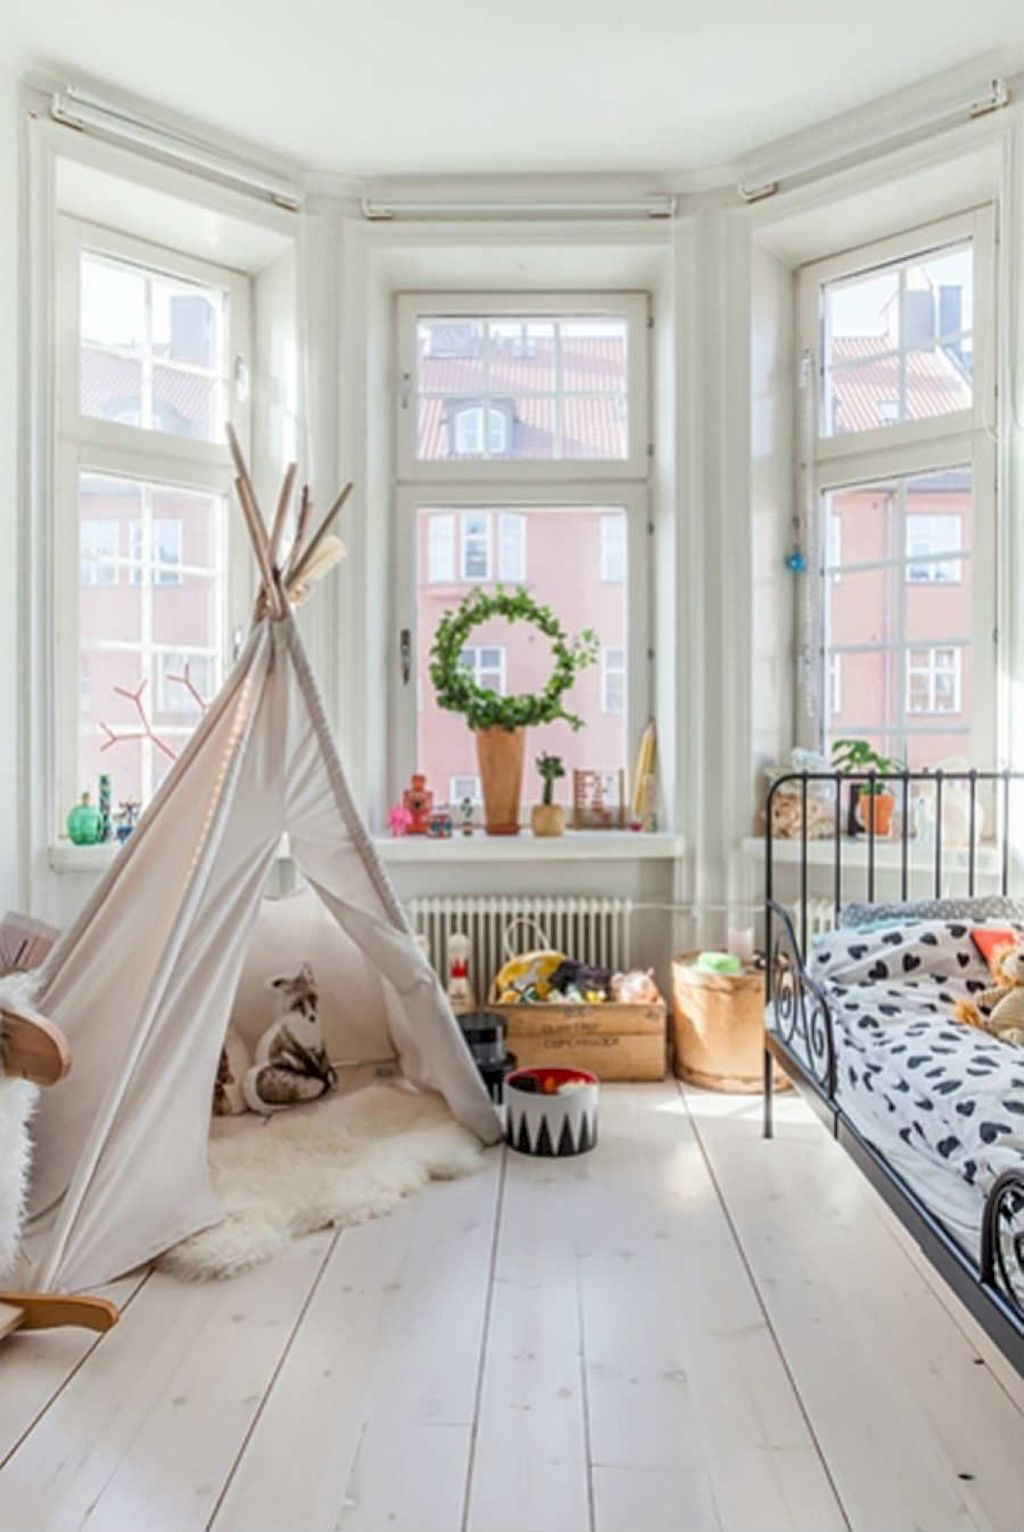 Fun and stylish play spaces for children looking best with modern and simple concepts that fit in any small space Image 14